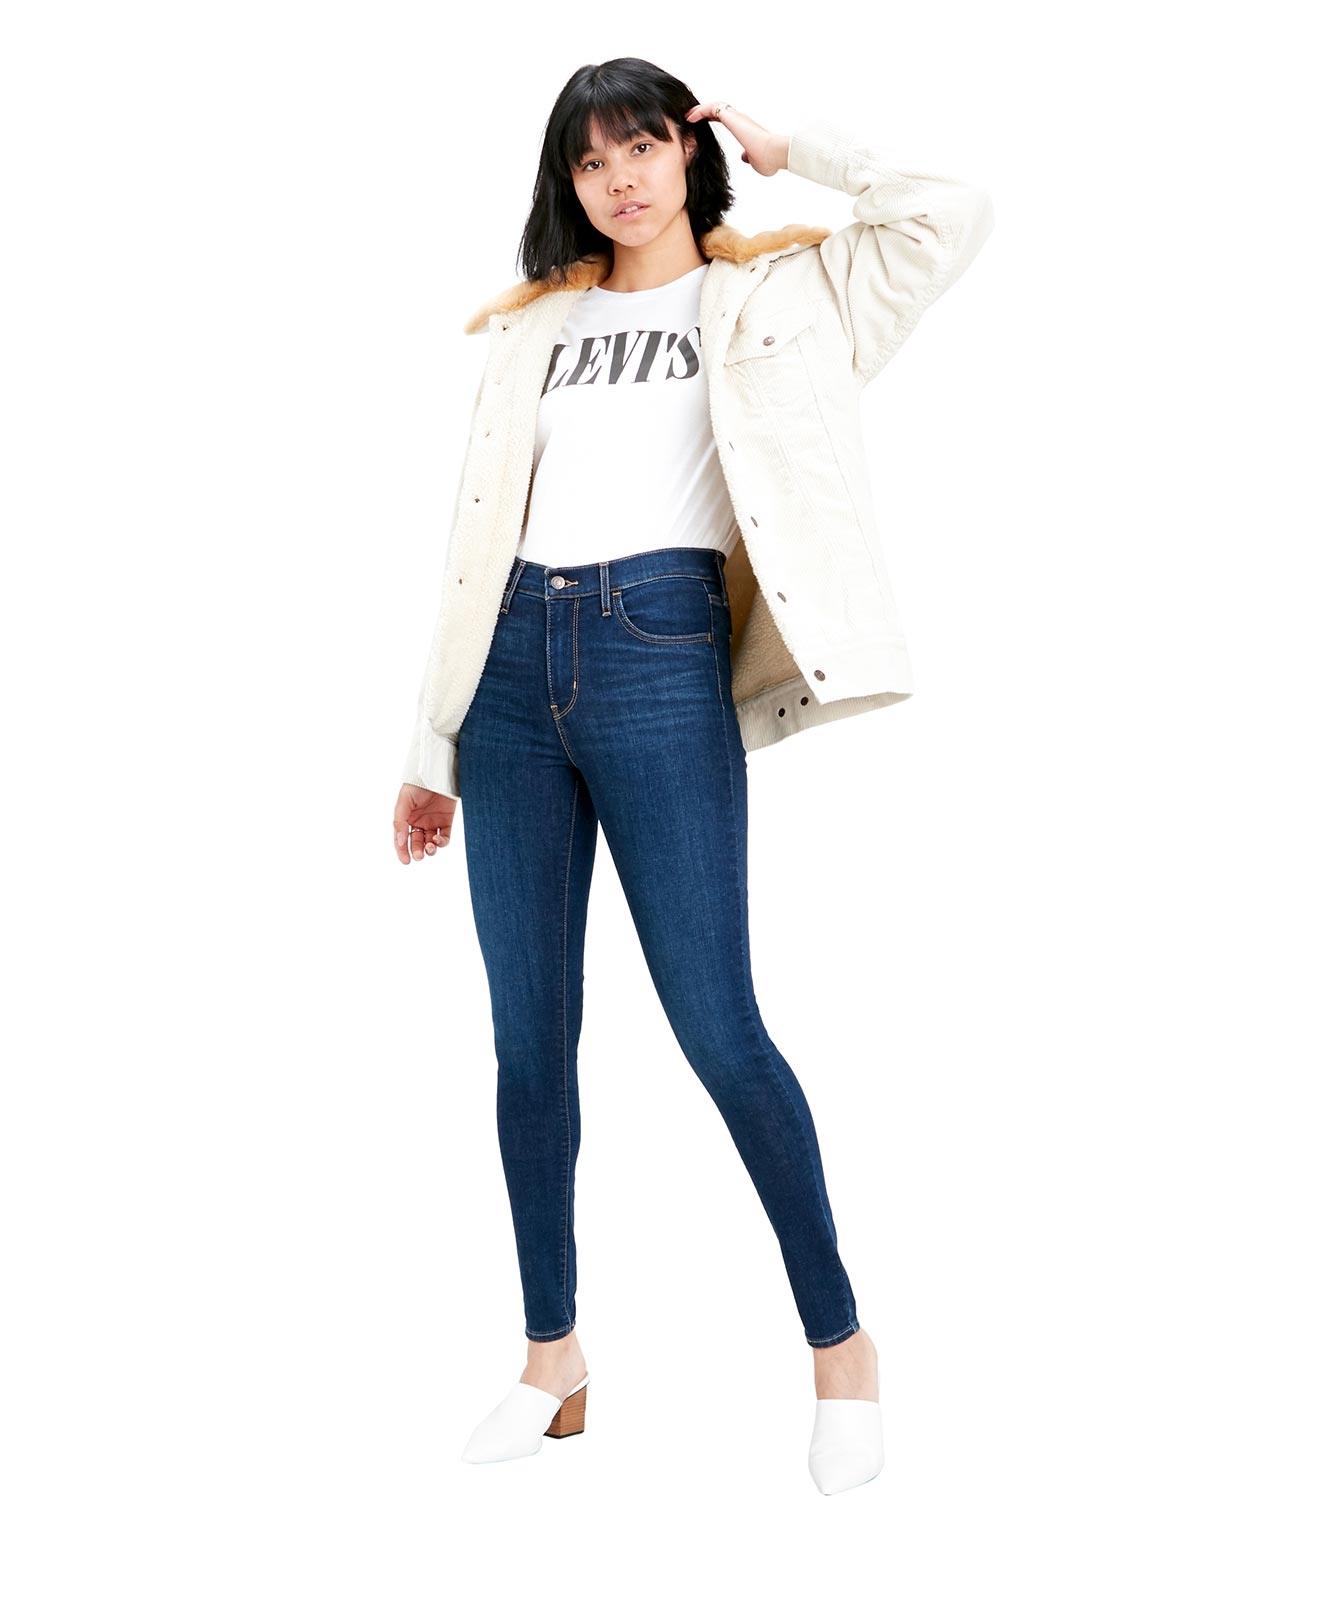 Hosen - Levis High Waisted Jeans 720 High Rise in Indigo Daze  - Onlineshop Jeans Meile